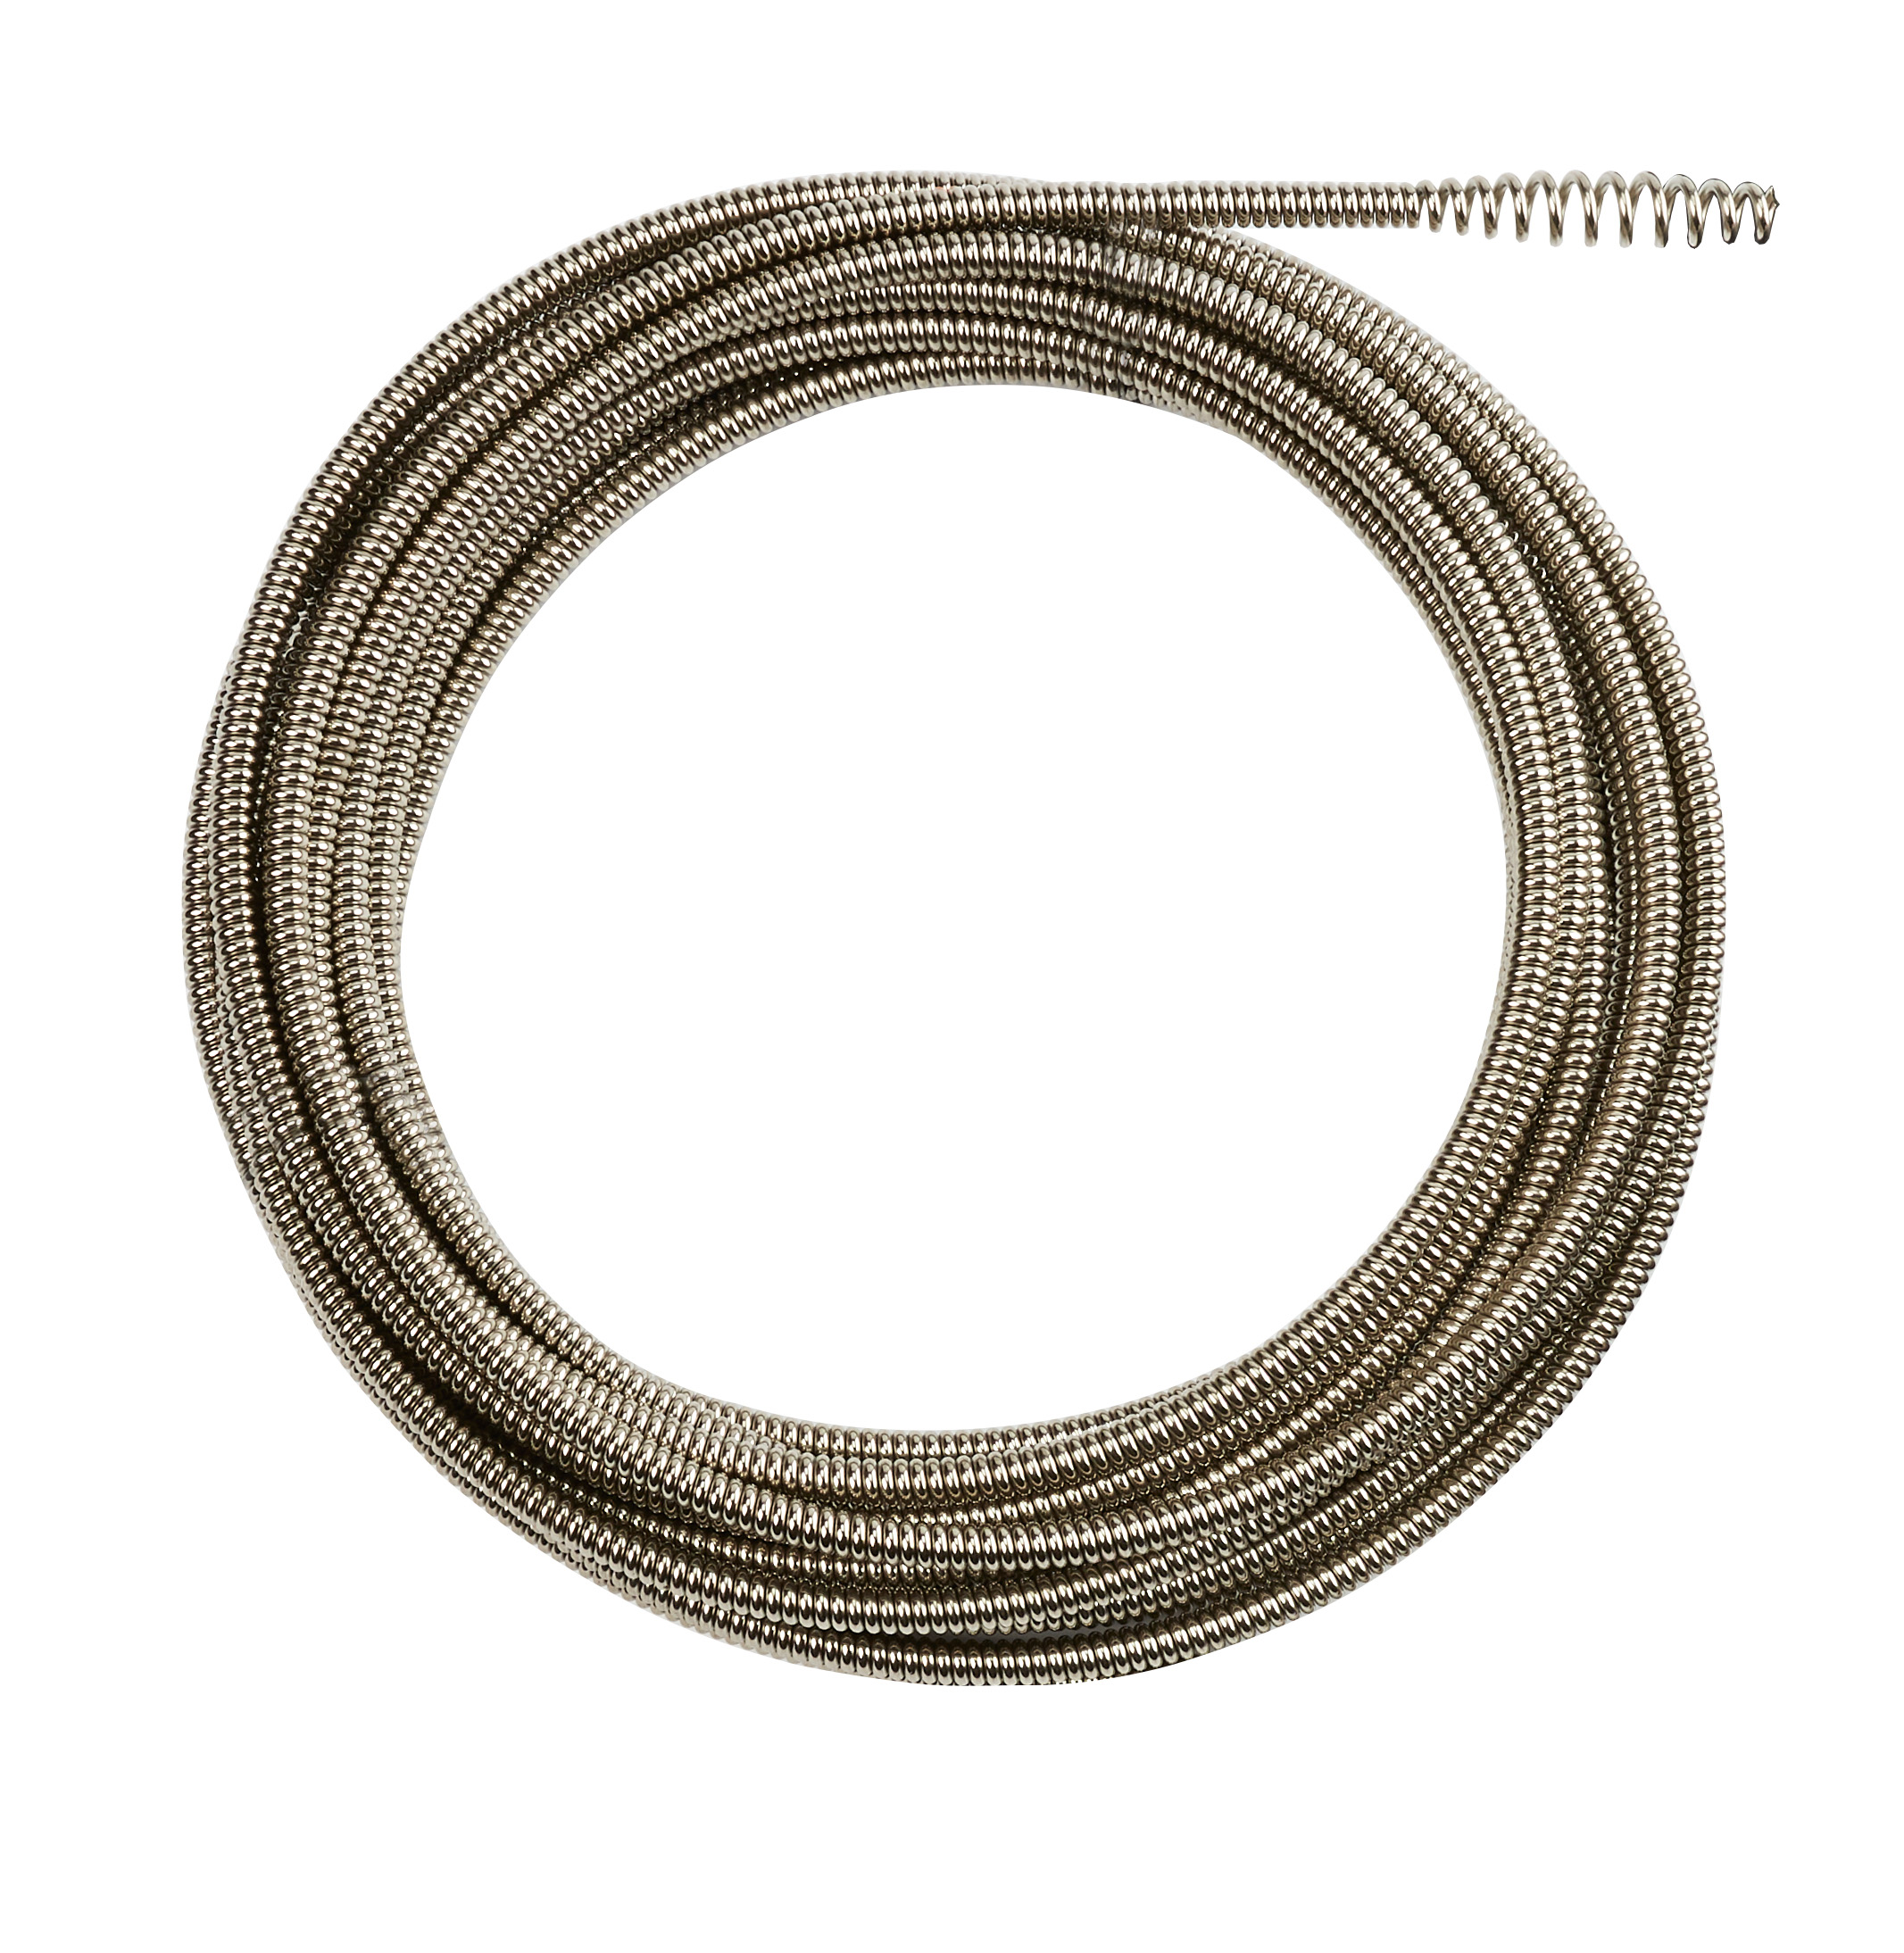 Milwaukee® 48-53-2674 Inner Core Bulb Head Drain Cleaning Cable, 5/16 in, Steel, For Use With Drain Cleaning Machines, 1-1/4 to 2-1/2 in Drain Line